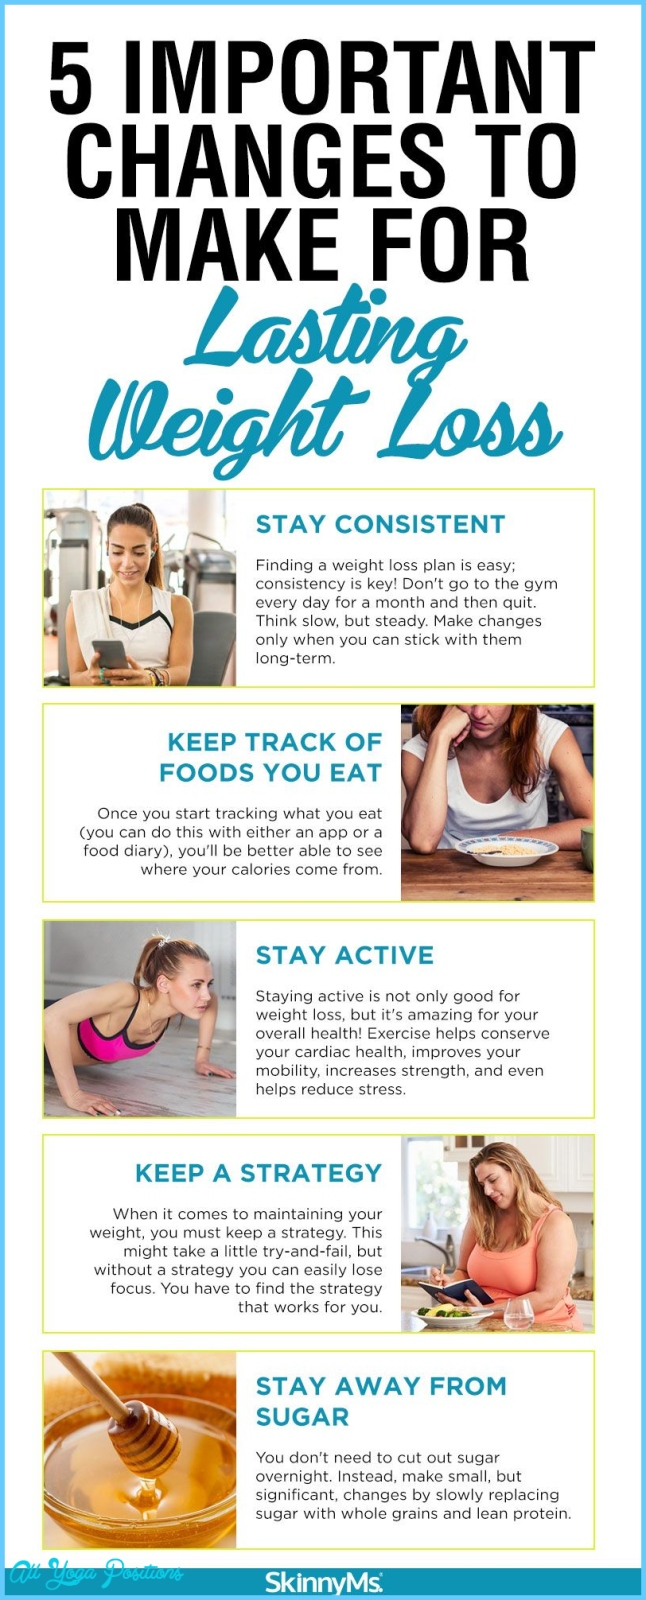 Important Changes to Make for Lasting Weight Loss